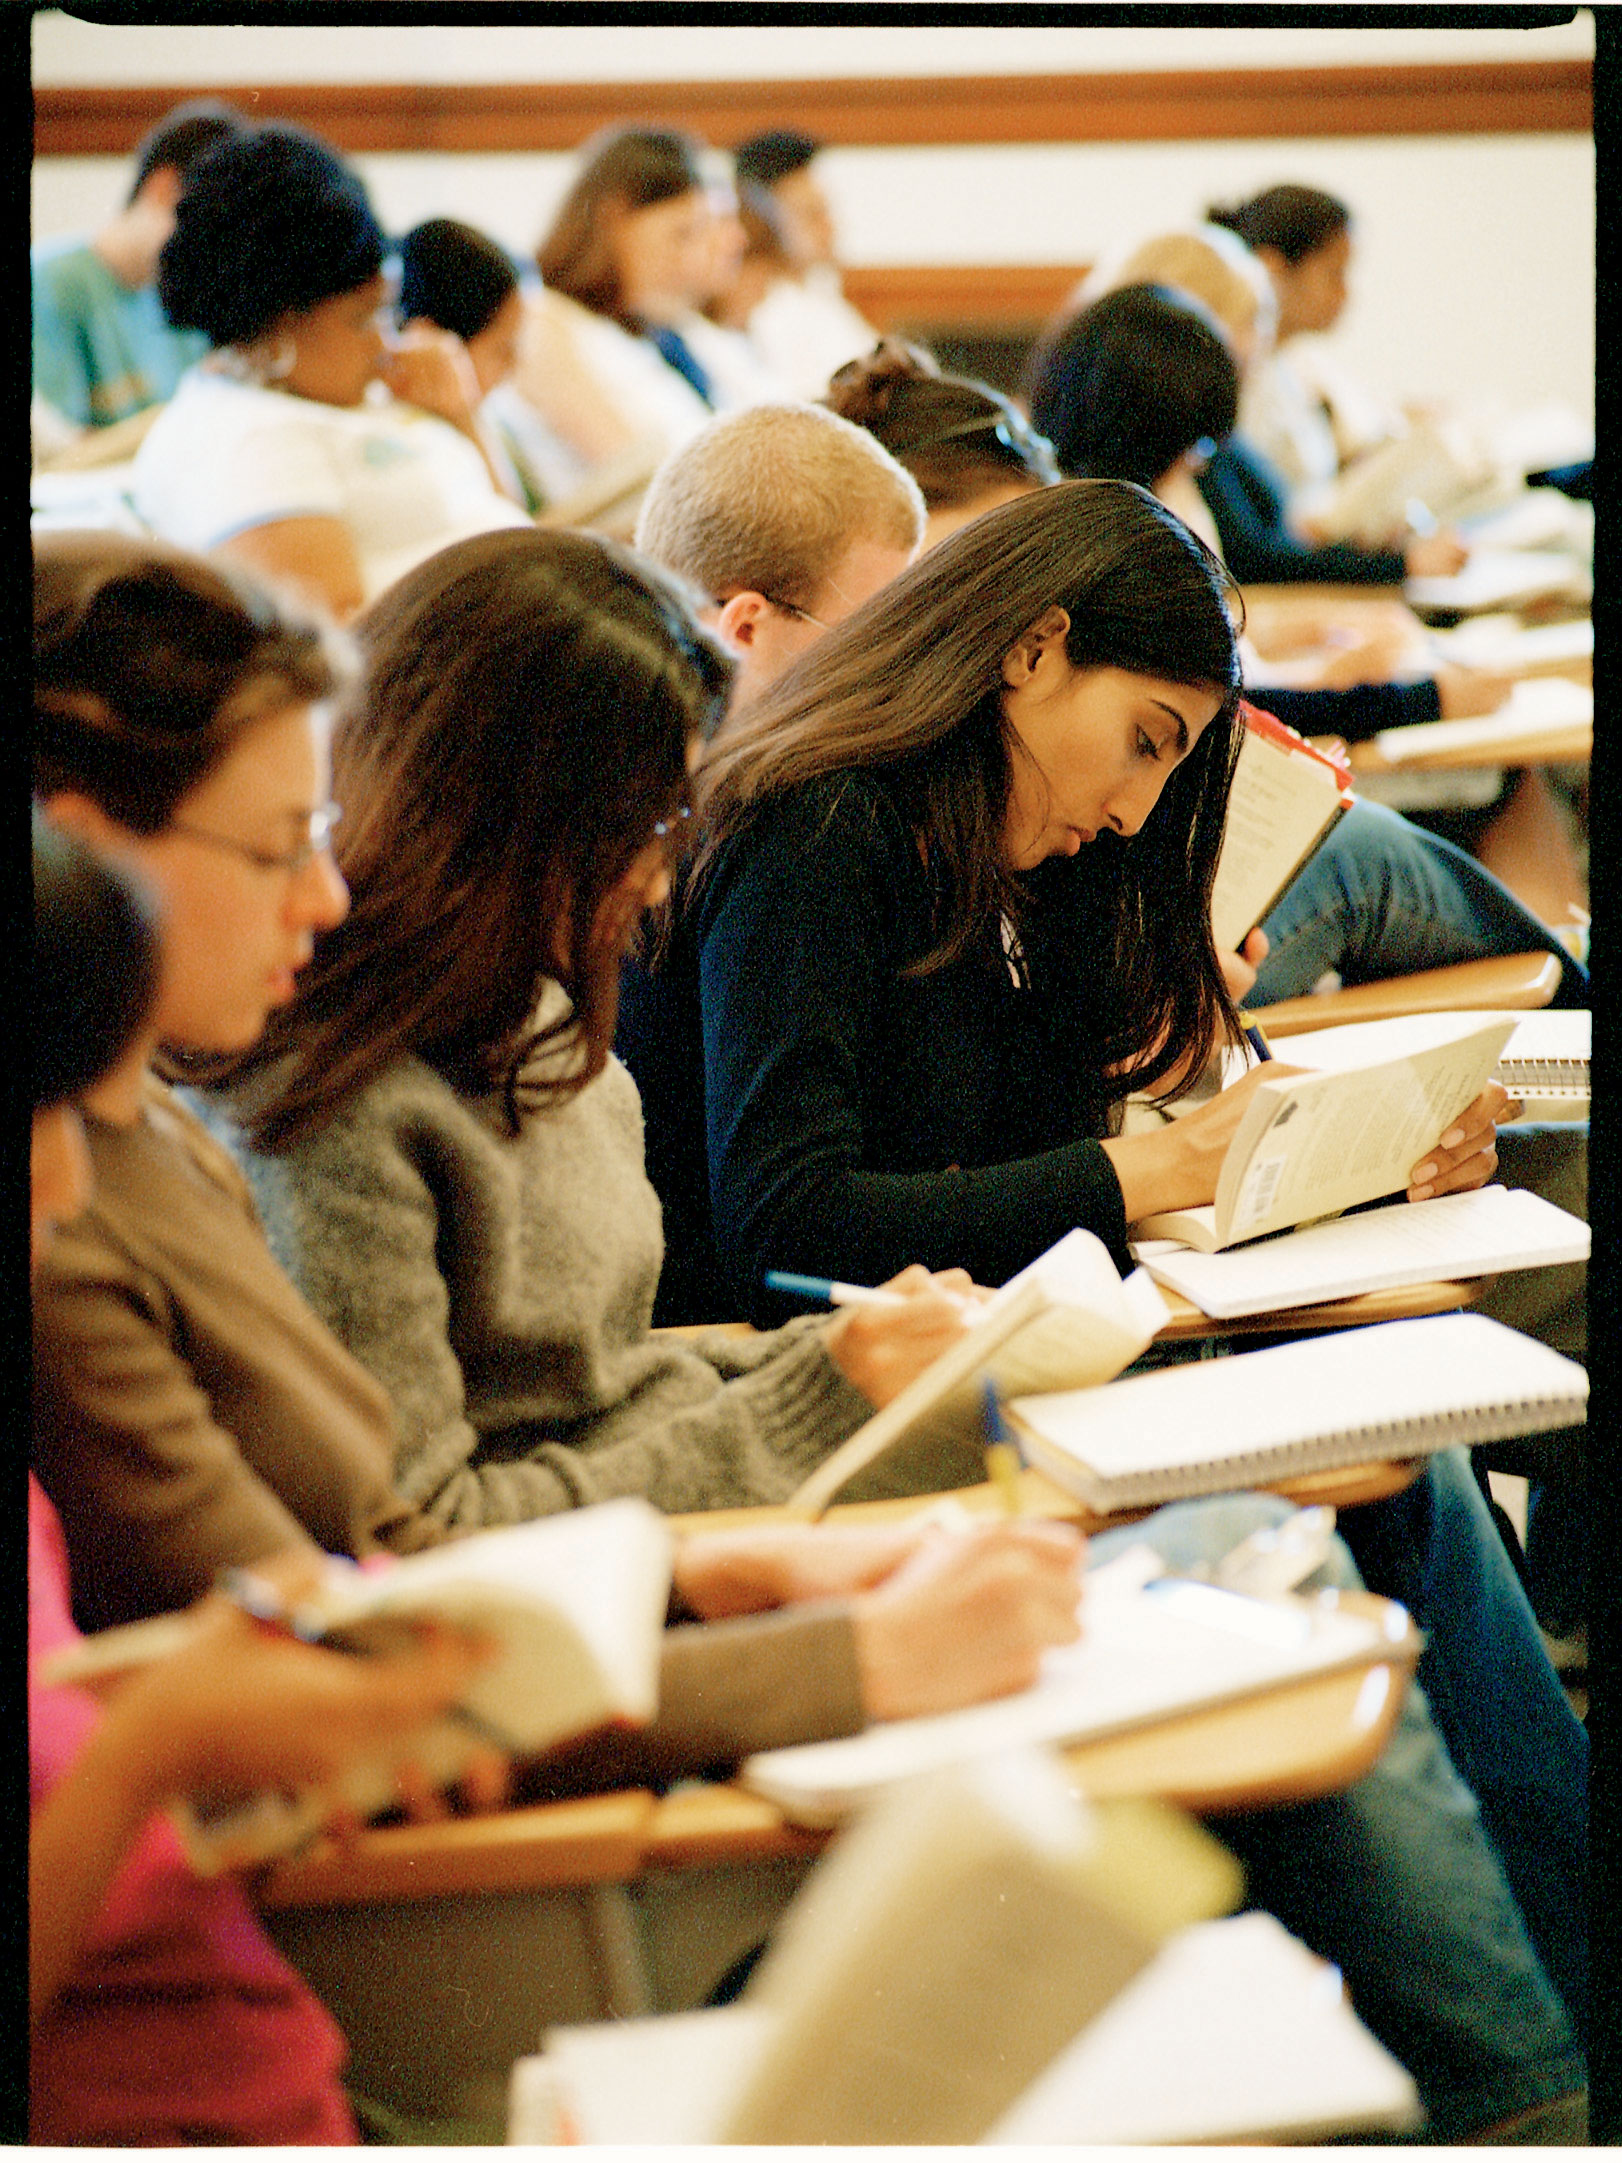 Close-up of a row of students highlighting pages in books, one woman's face particularly visible in profile